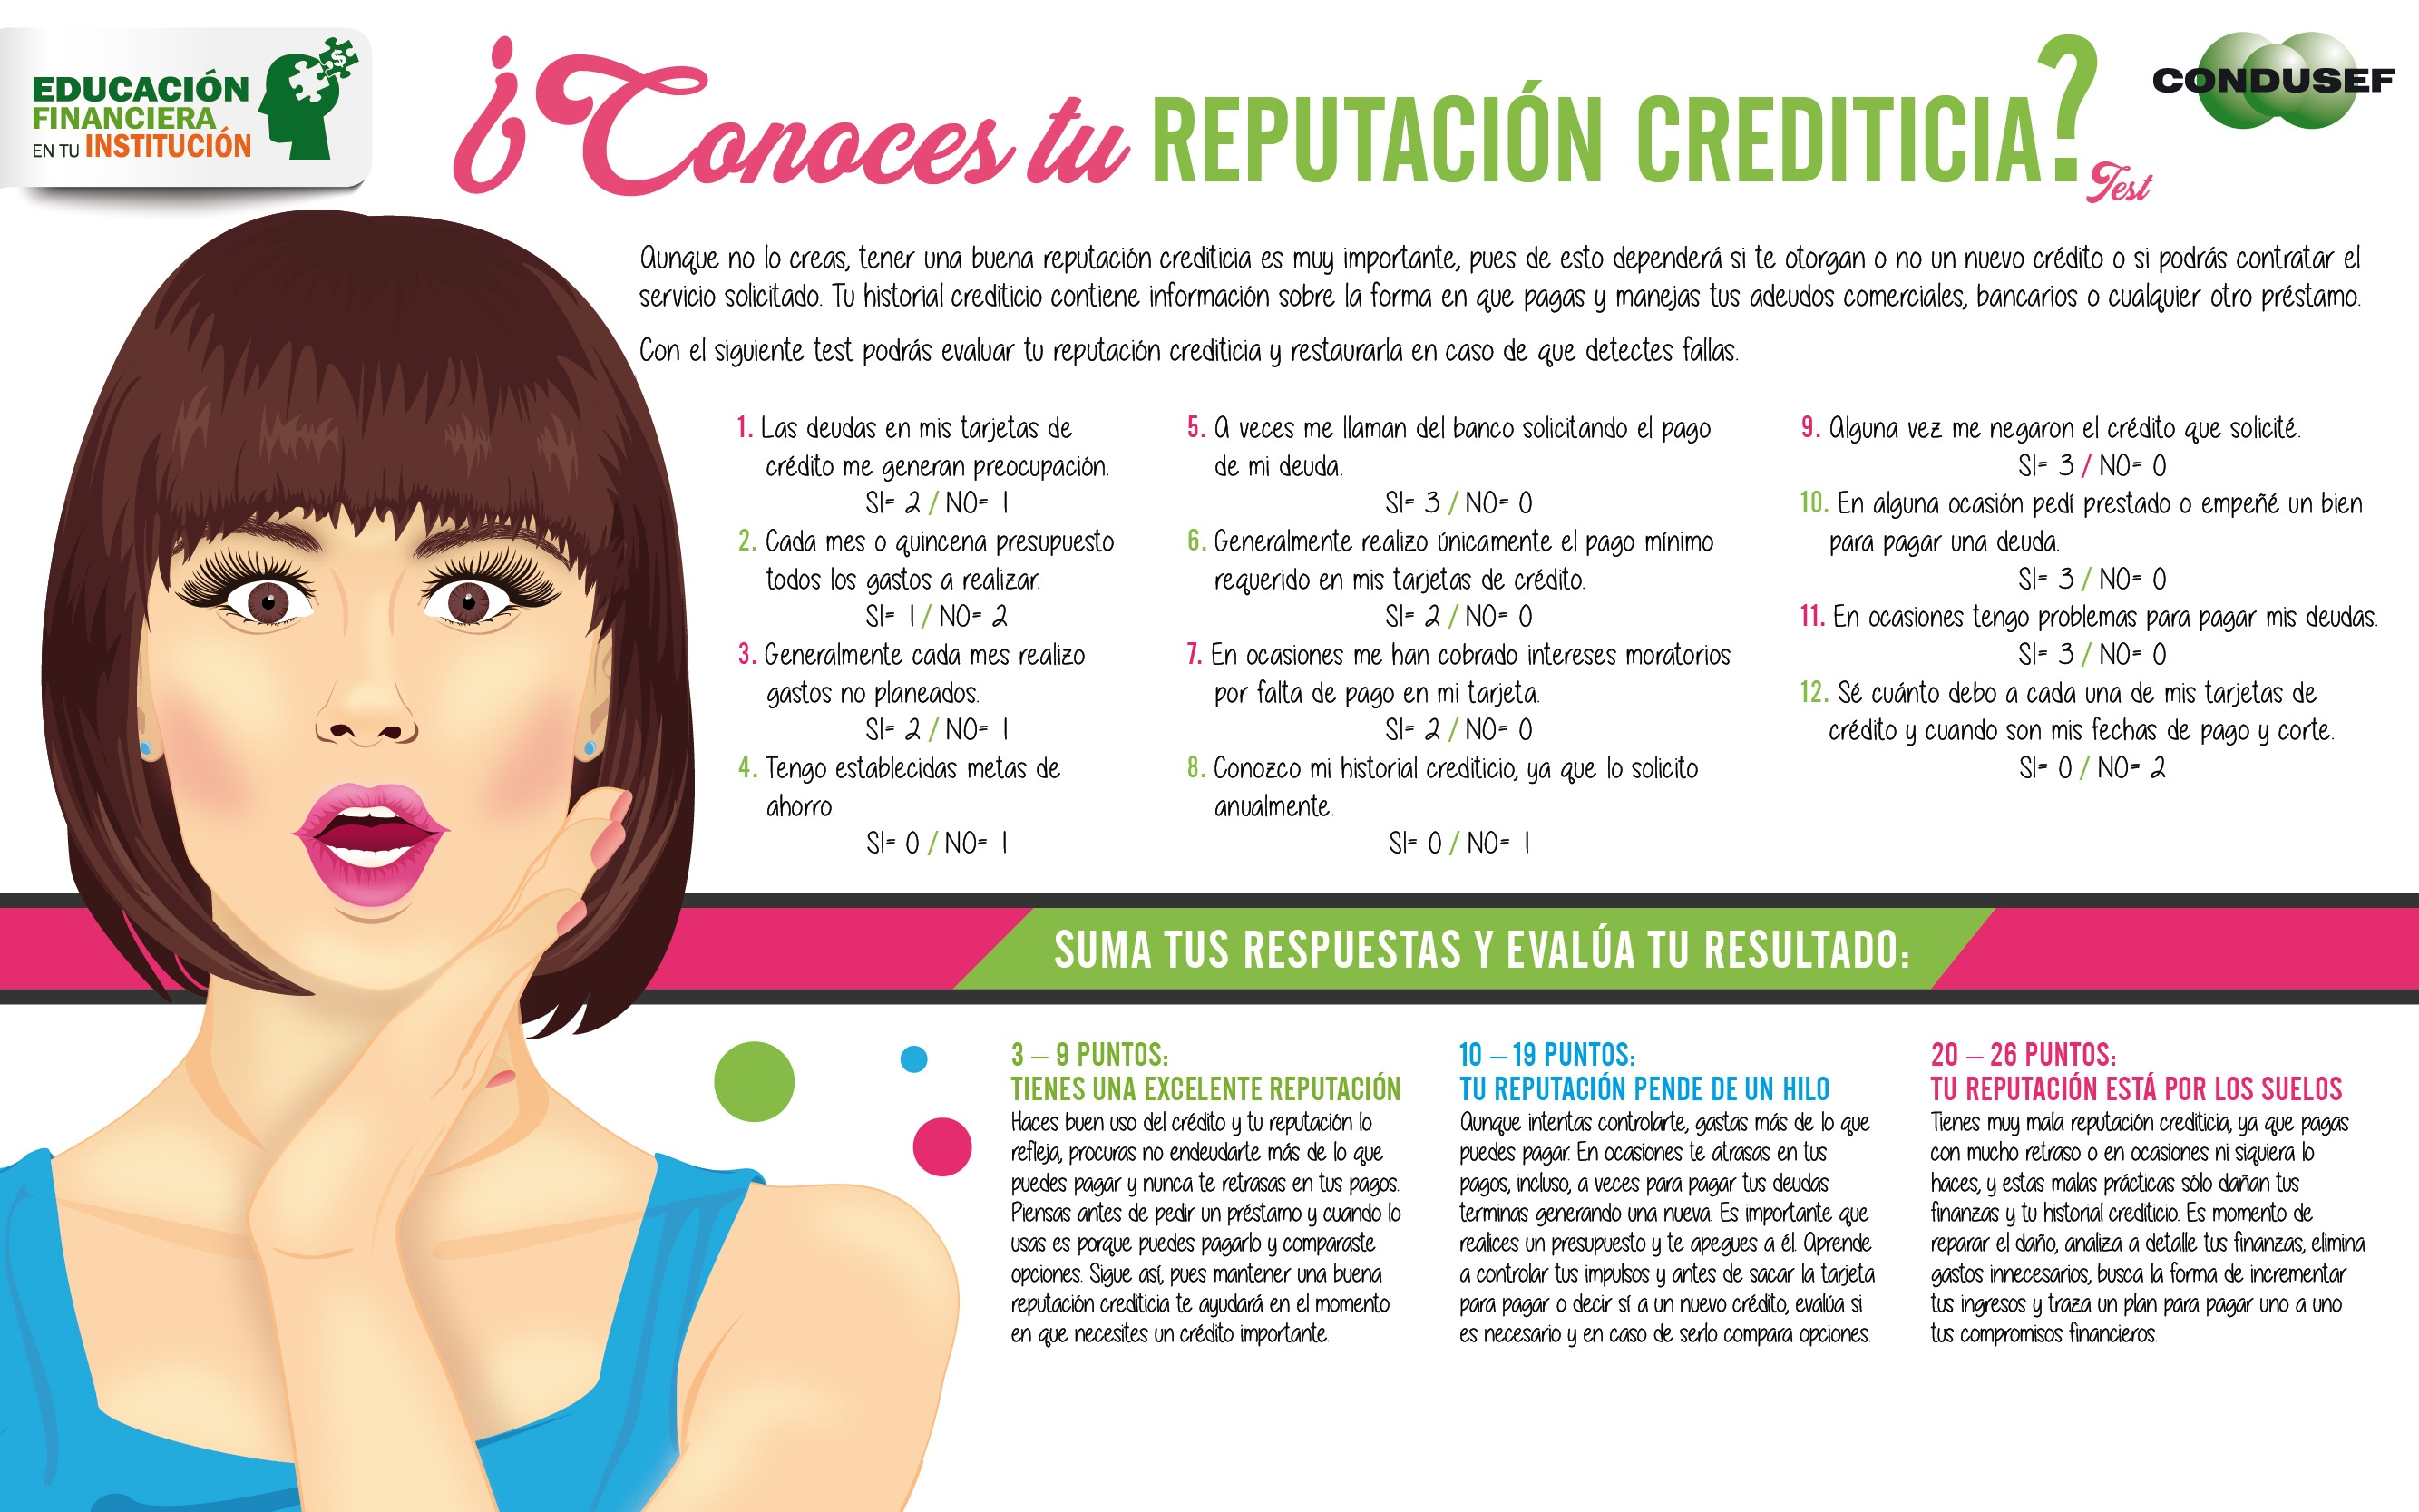 ¿Conoces tu reputación crediticia?